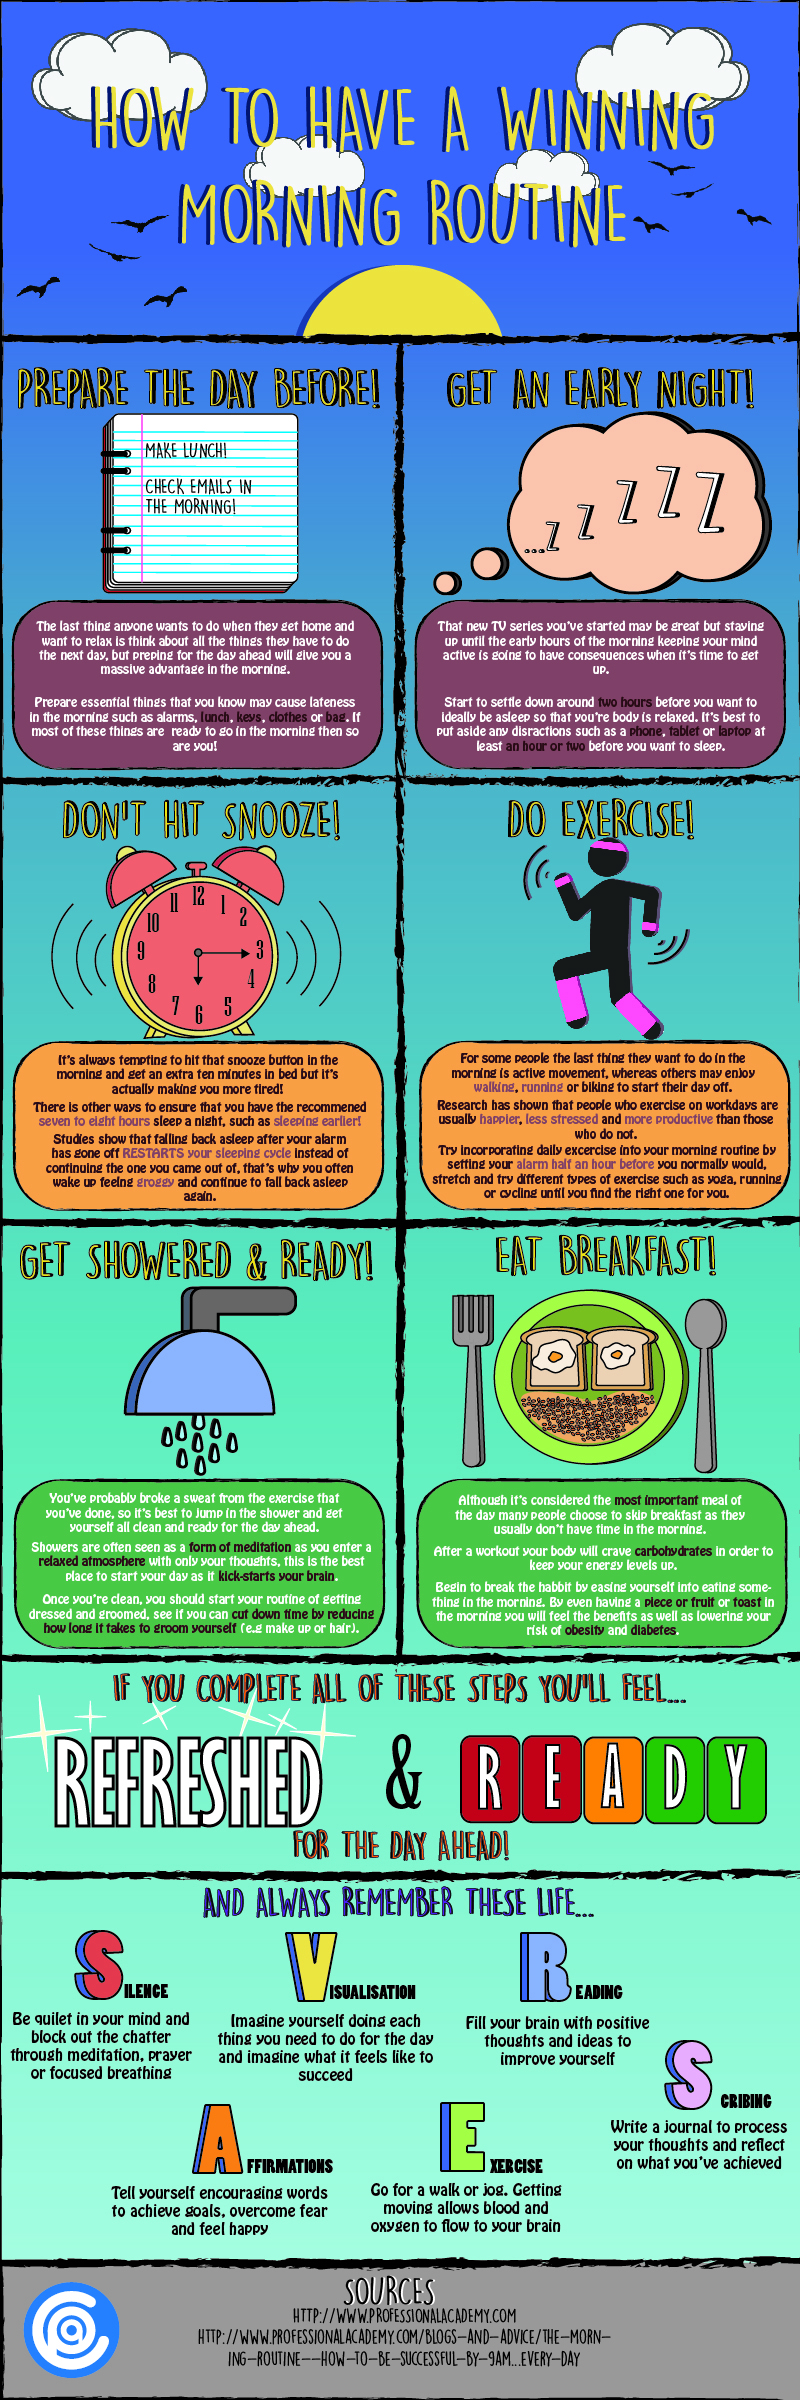 How to have a winning morning routine infographic